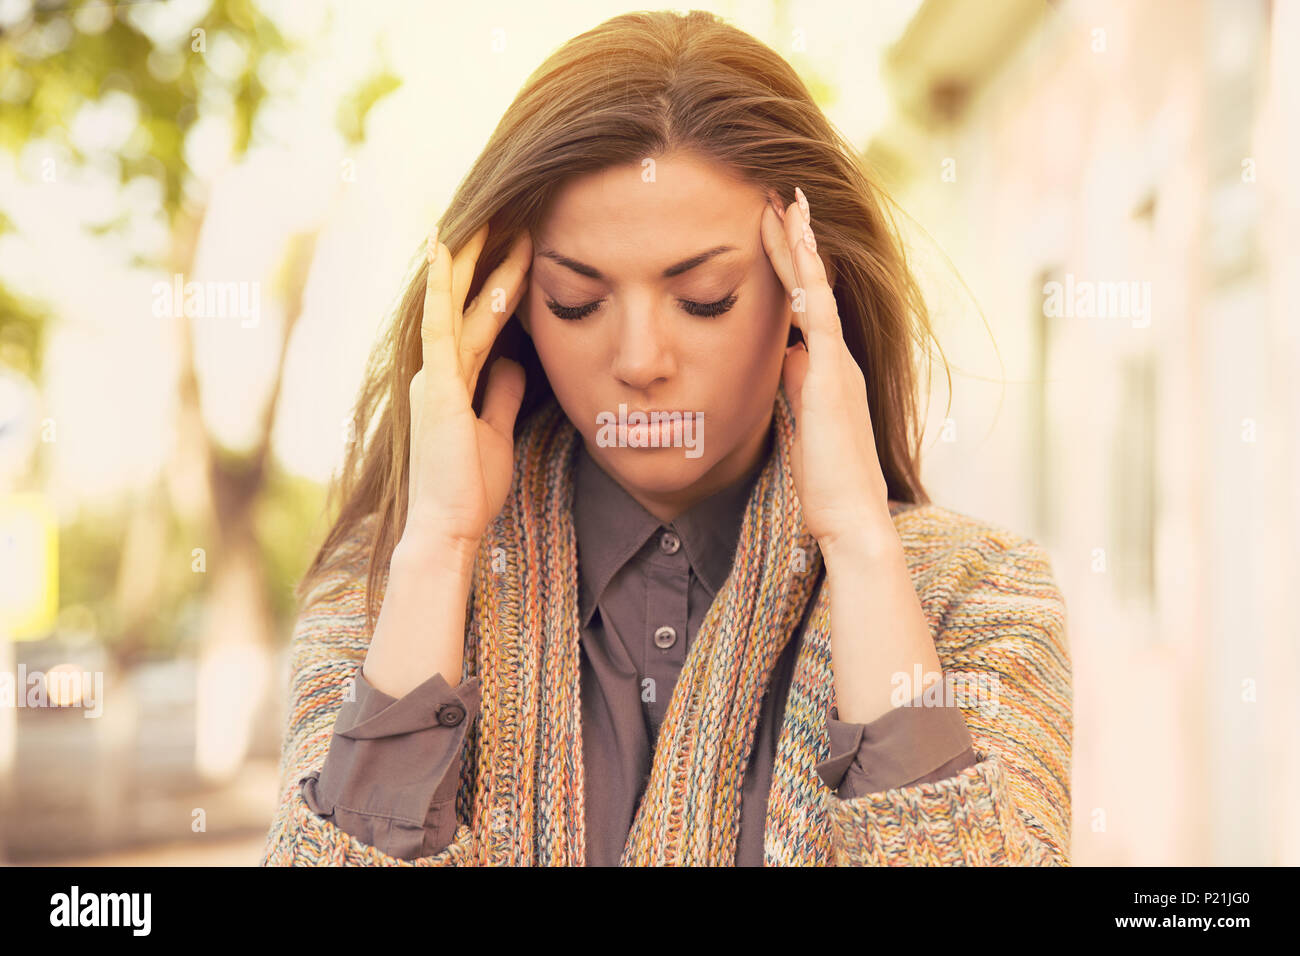 portrait stressed sad woman standing outdoors. City life style stress - Stock Image